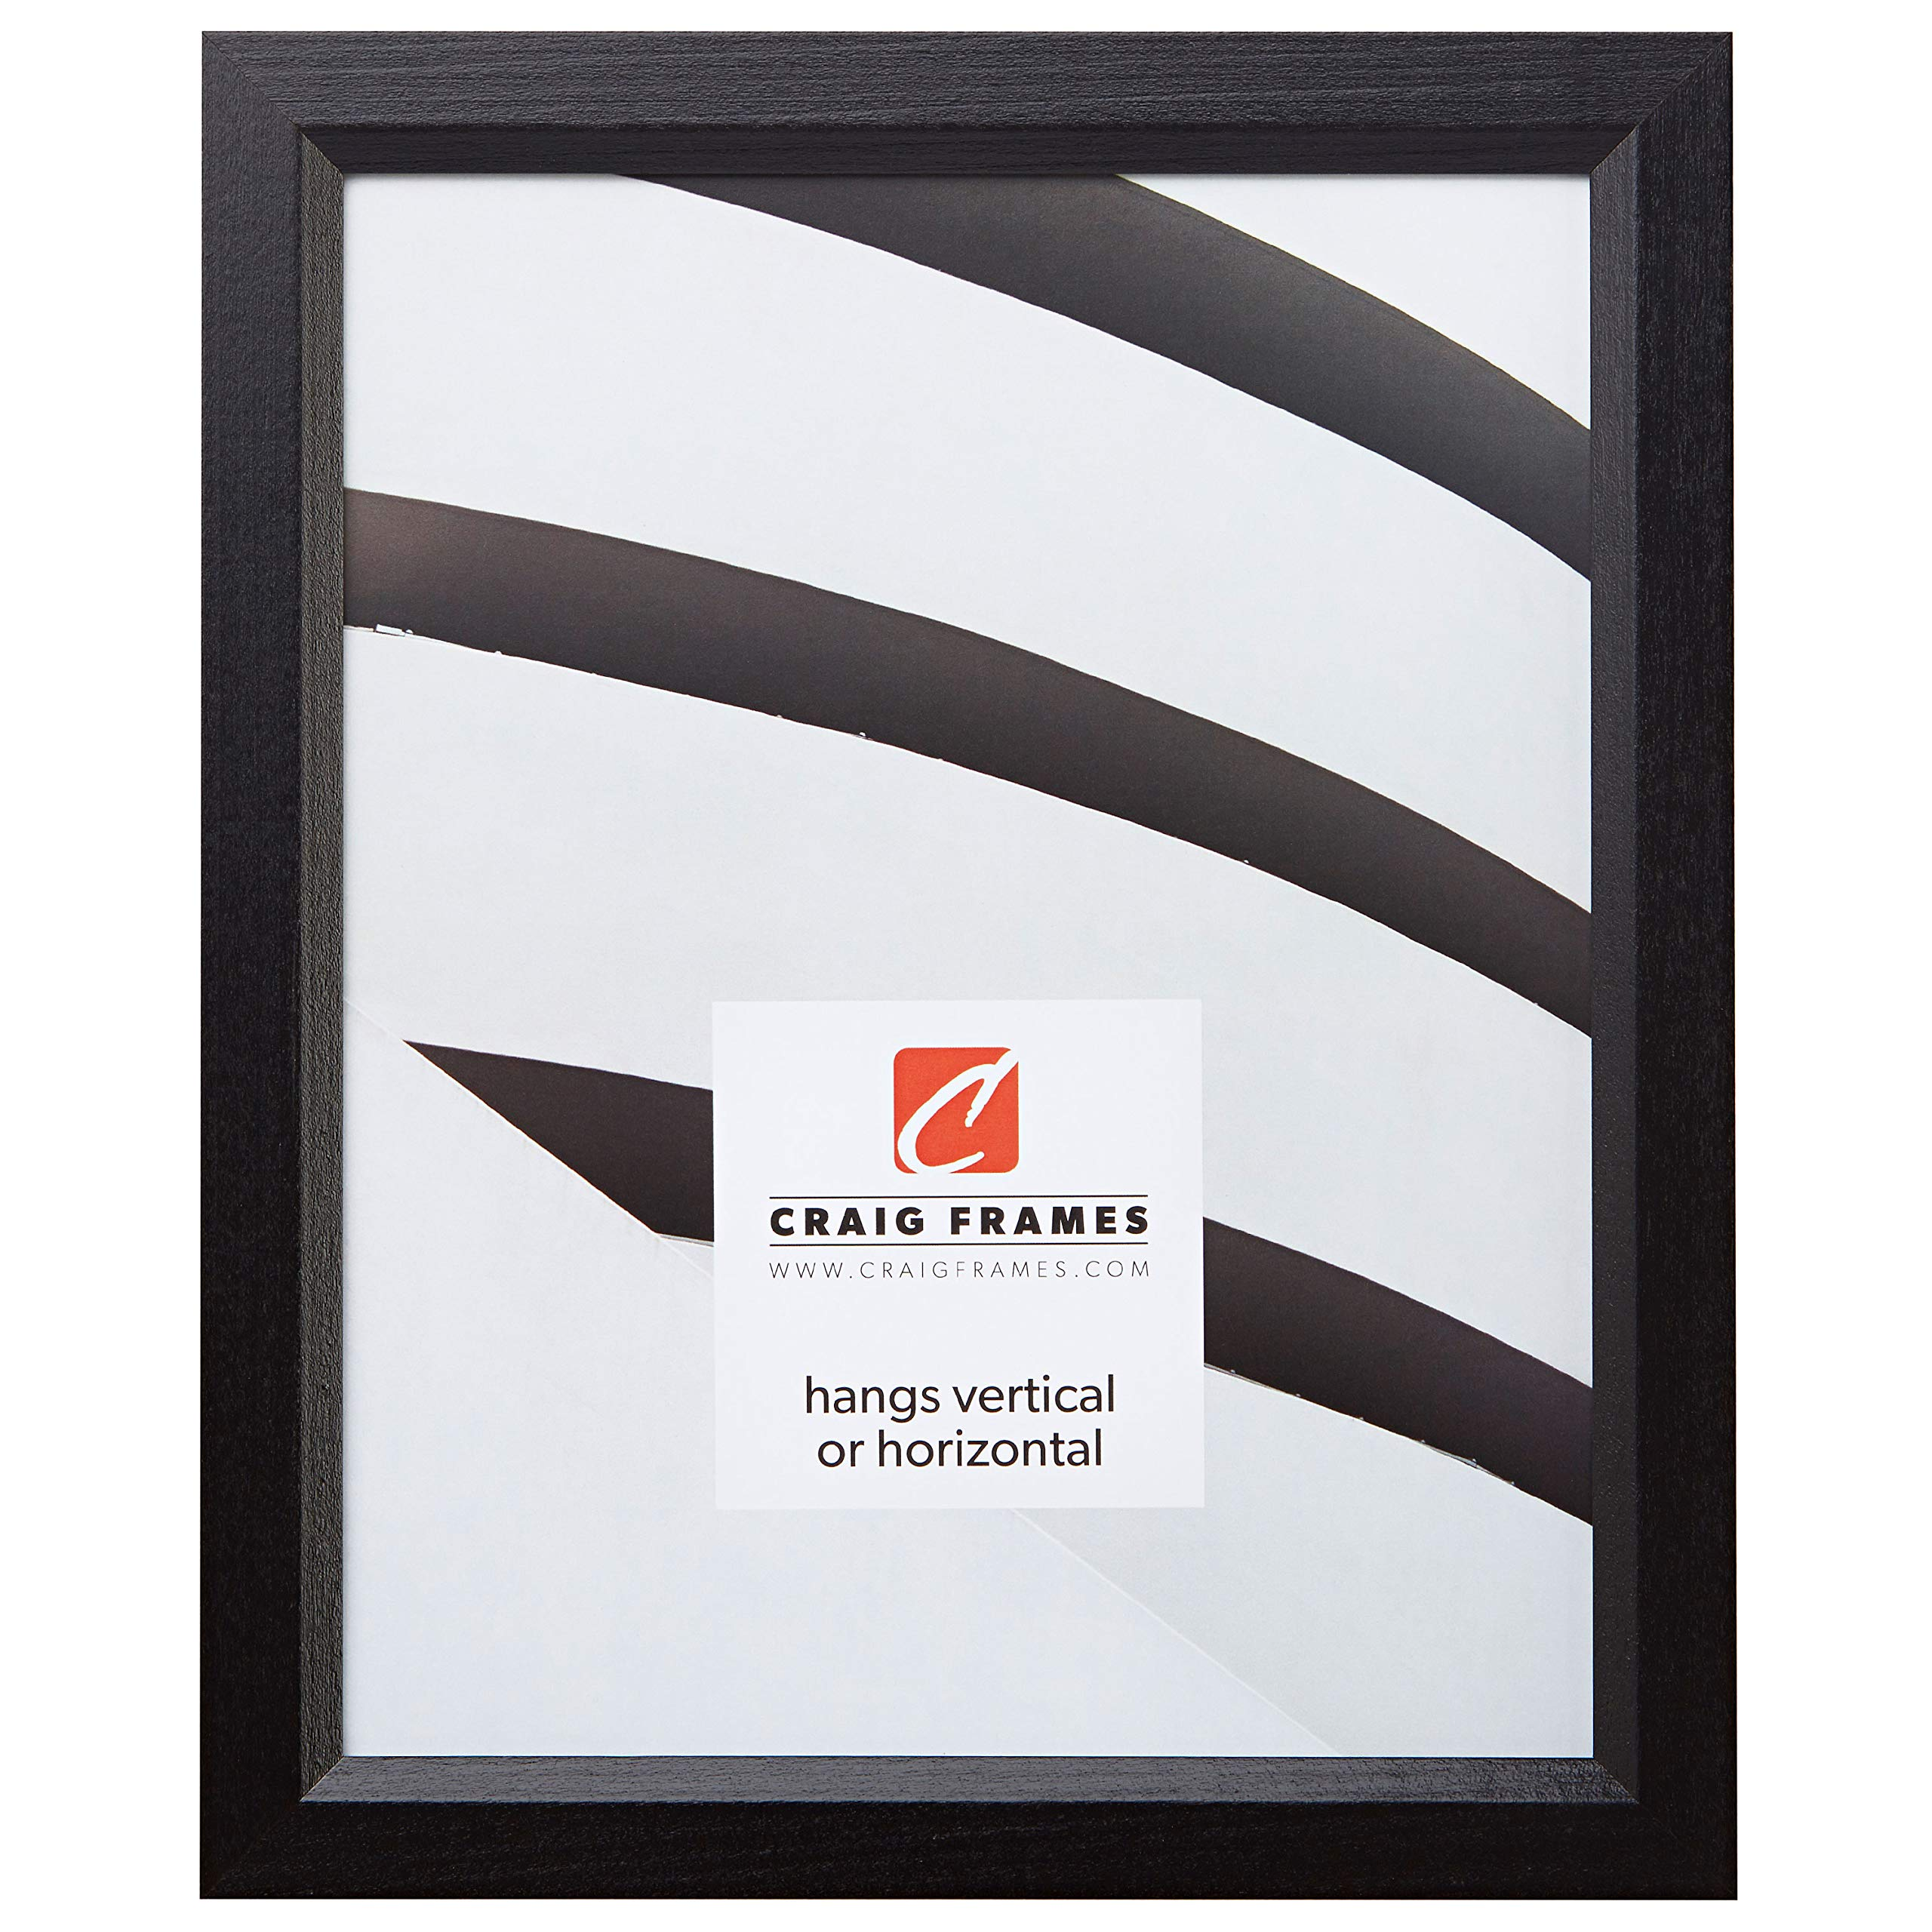 Craig Frames 7171610BK 8.5 by 11-Inch Picture/Poster Frame, Wood Grain Finish.825-Inch Wide, Solid Black